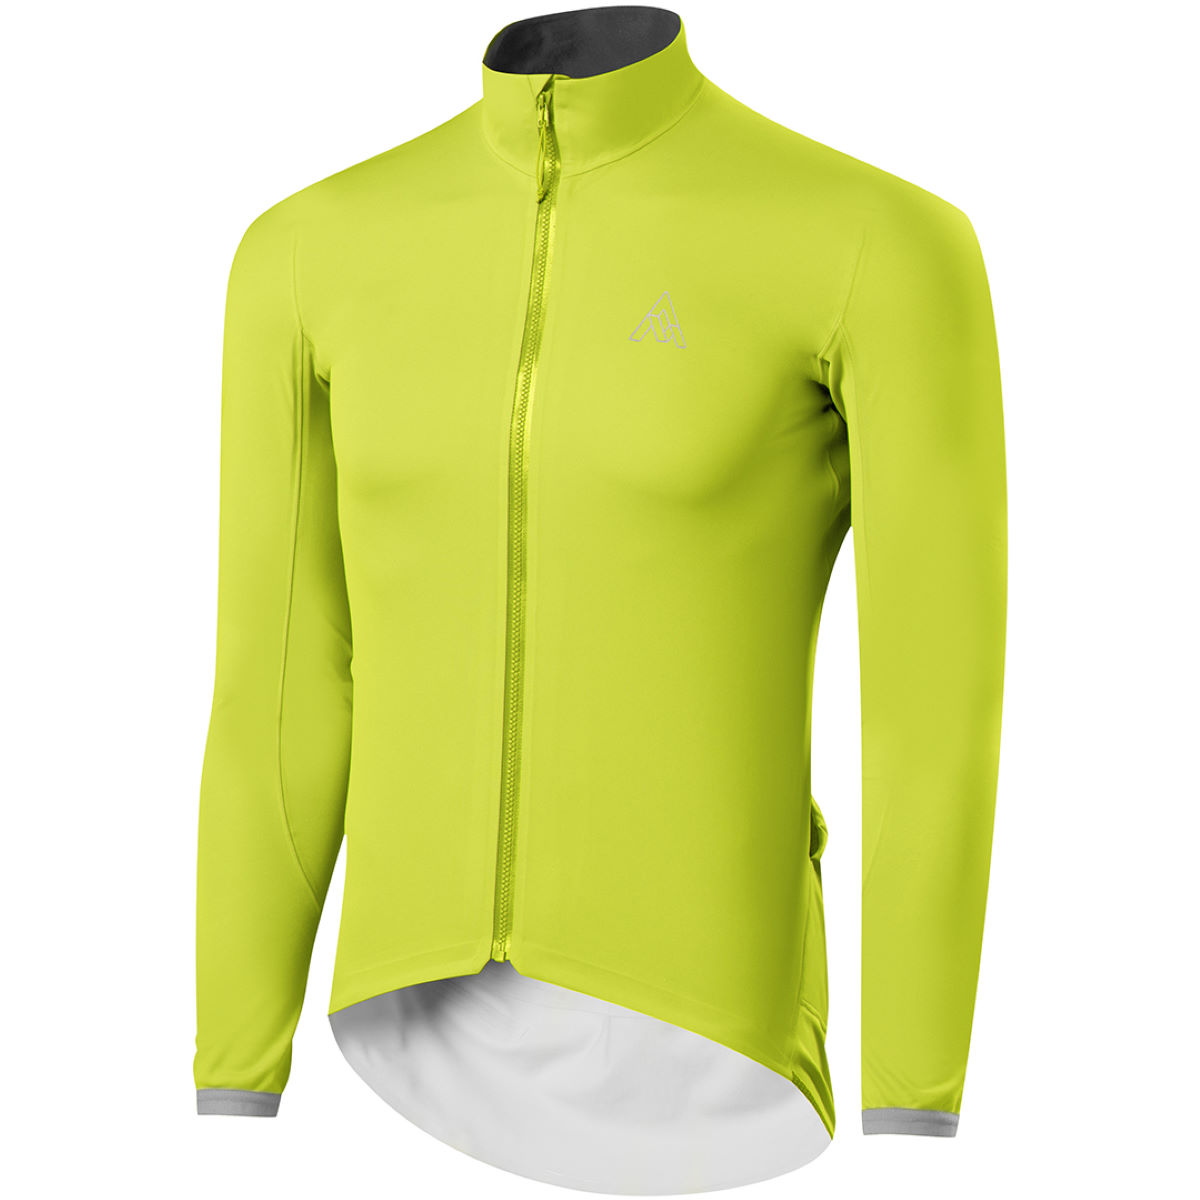 Maillot 7Mesh Corsa Windstopper Softshell - XL Highlighter Yellow